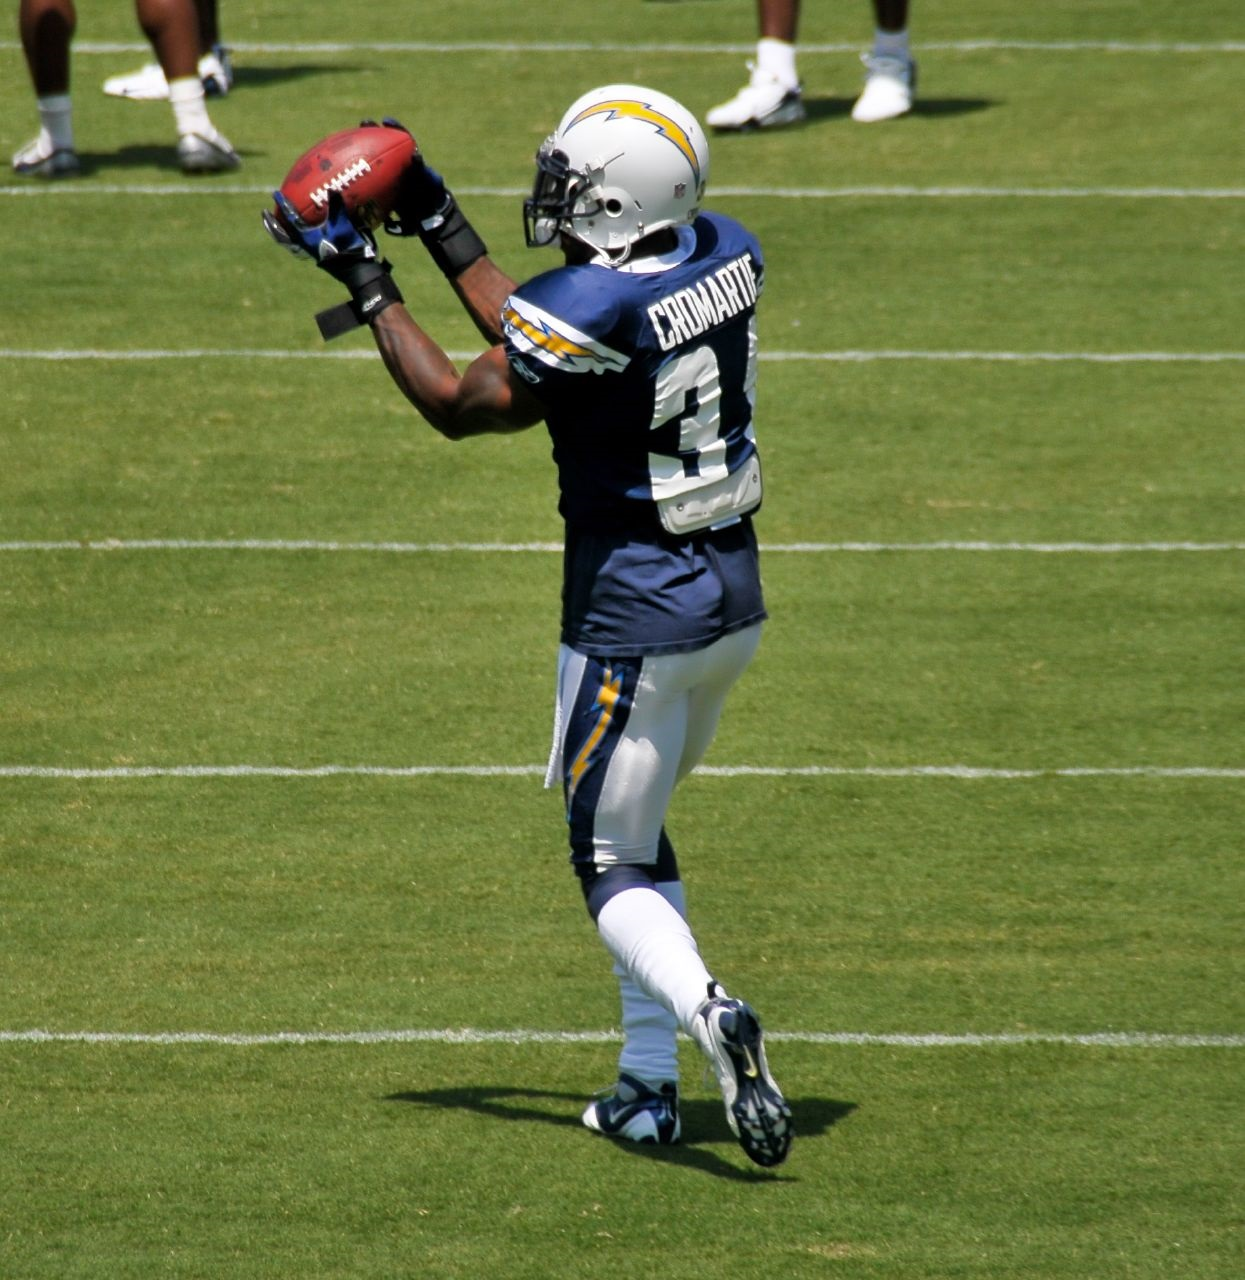 Antonio Cromartie (Photo by SD Dirk)